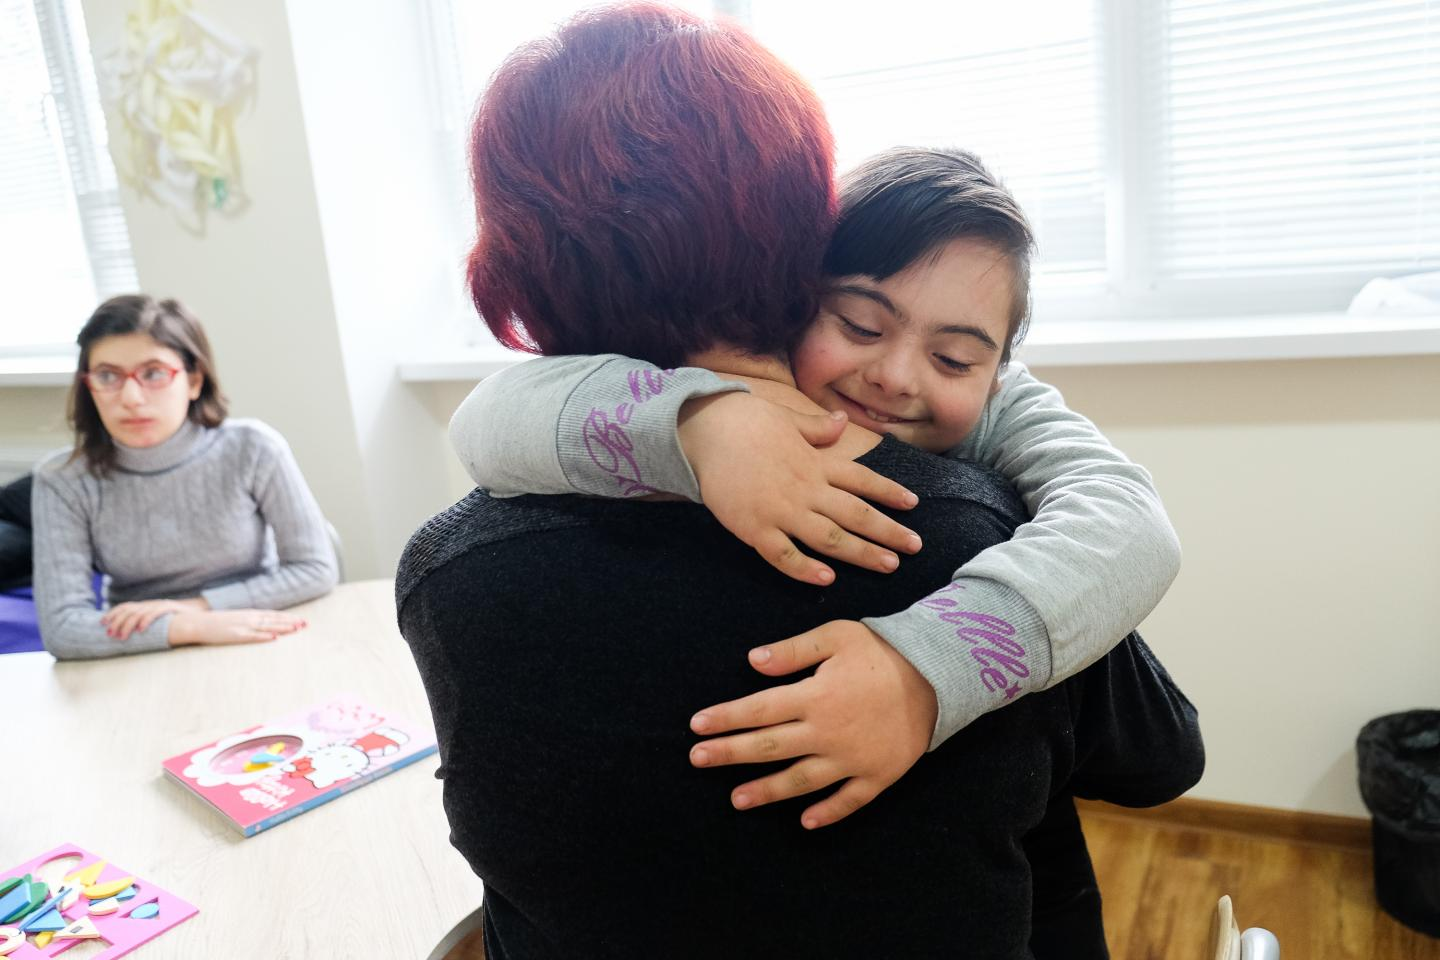 Karina, 10, hugging her mother Gaiane